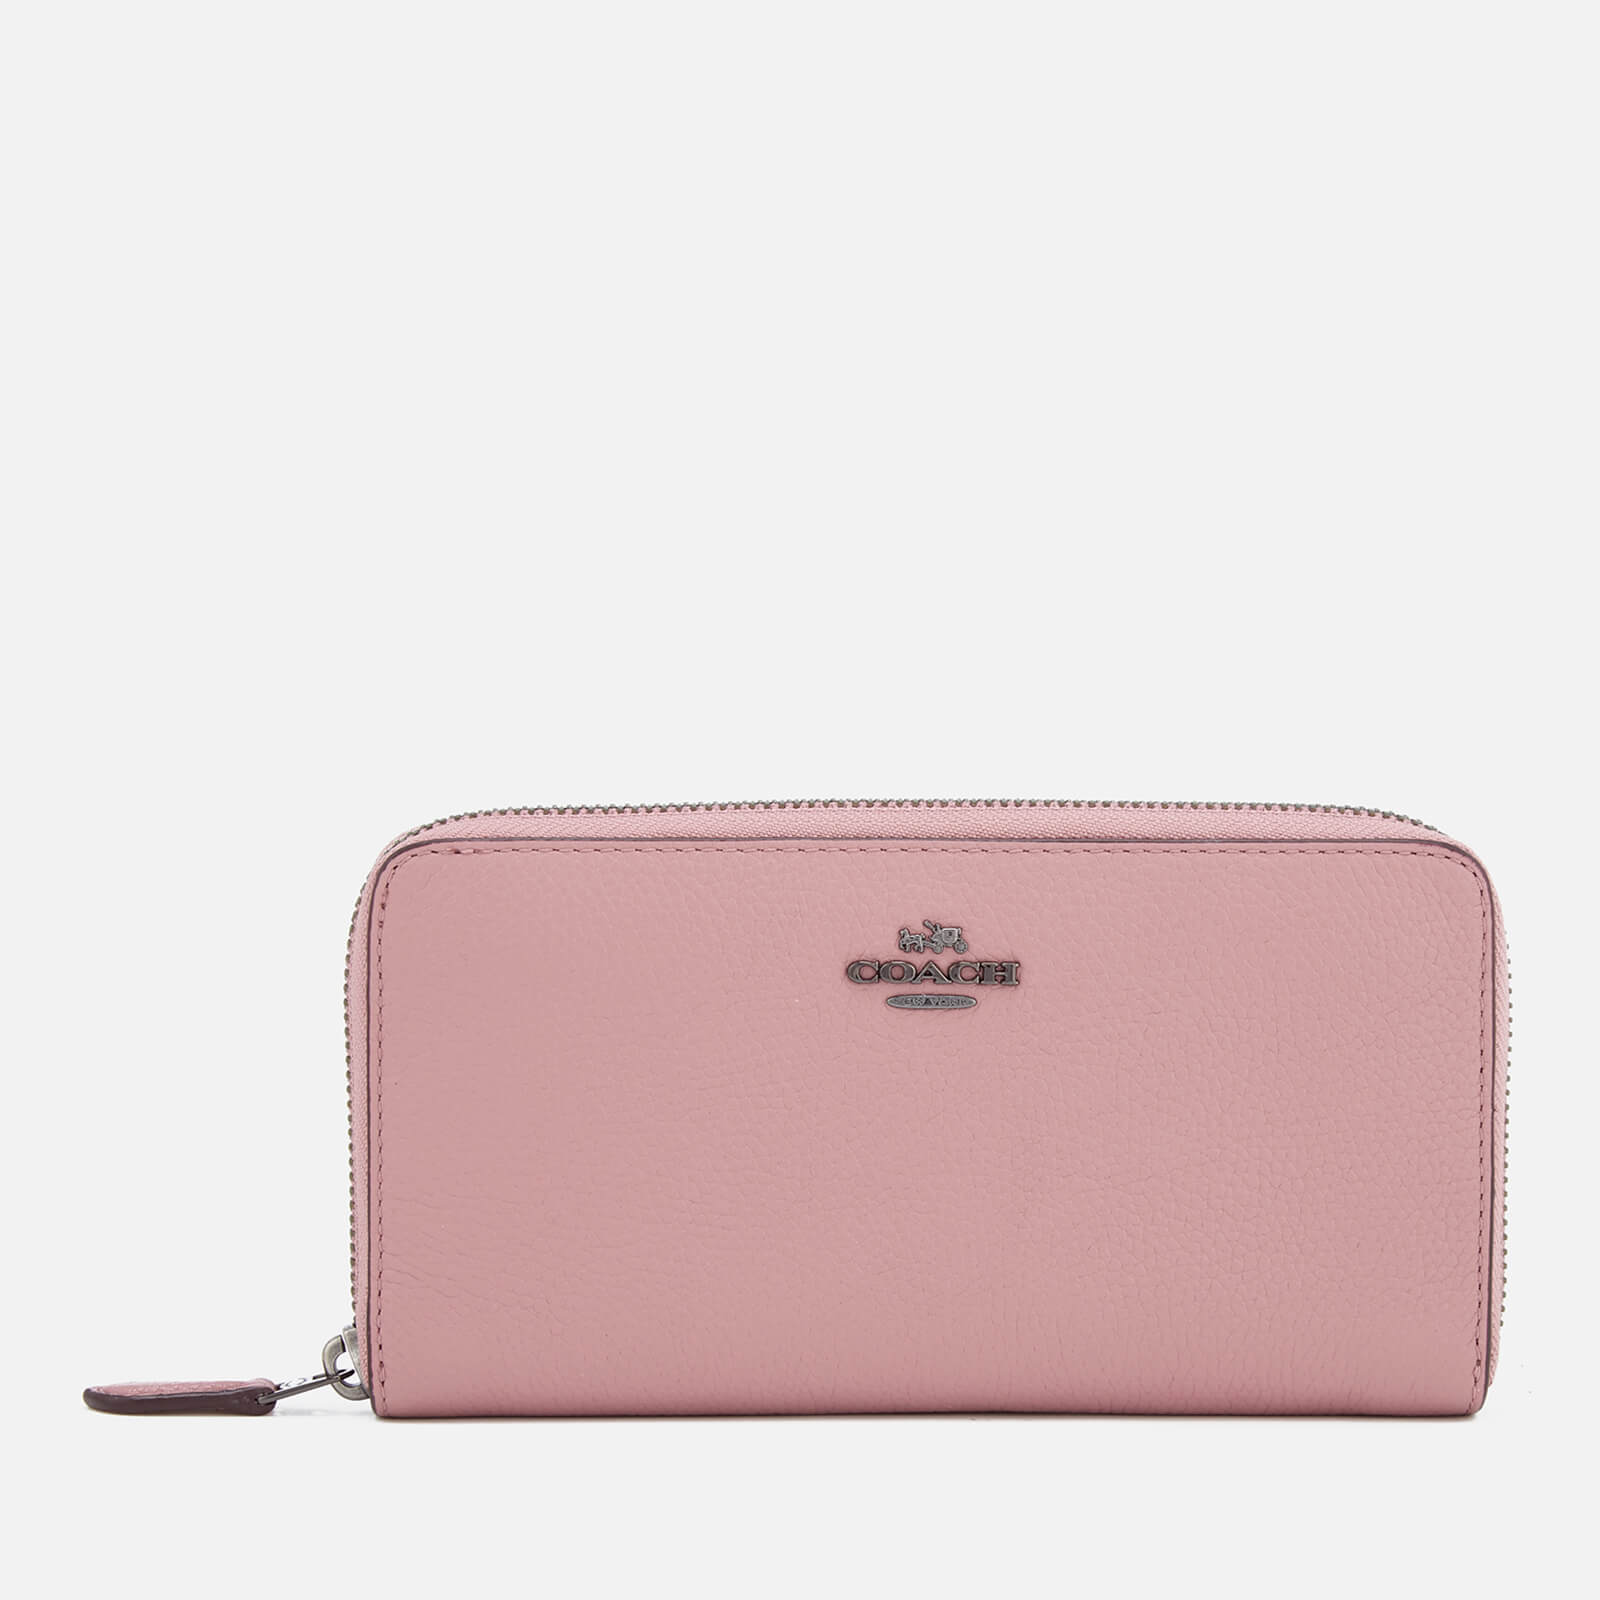 5072a262f Coach Women's Accordion Zip Purse - Dusty Rose - Free UK Delivery over £50